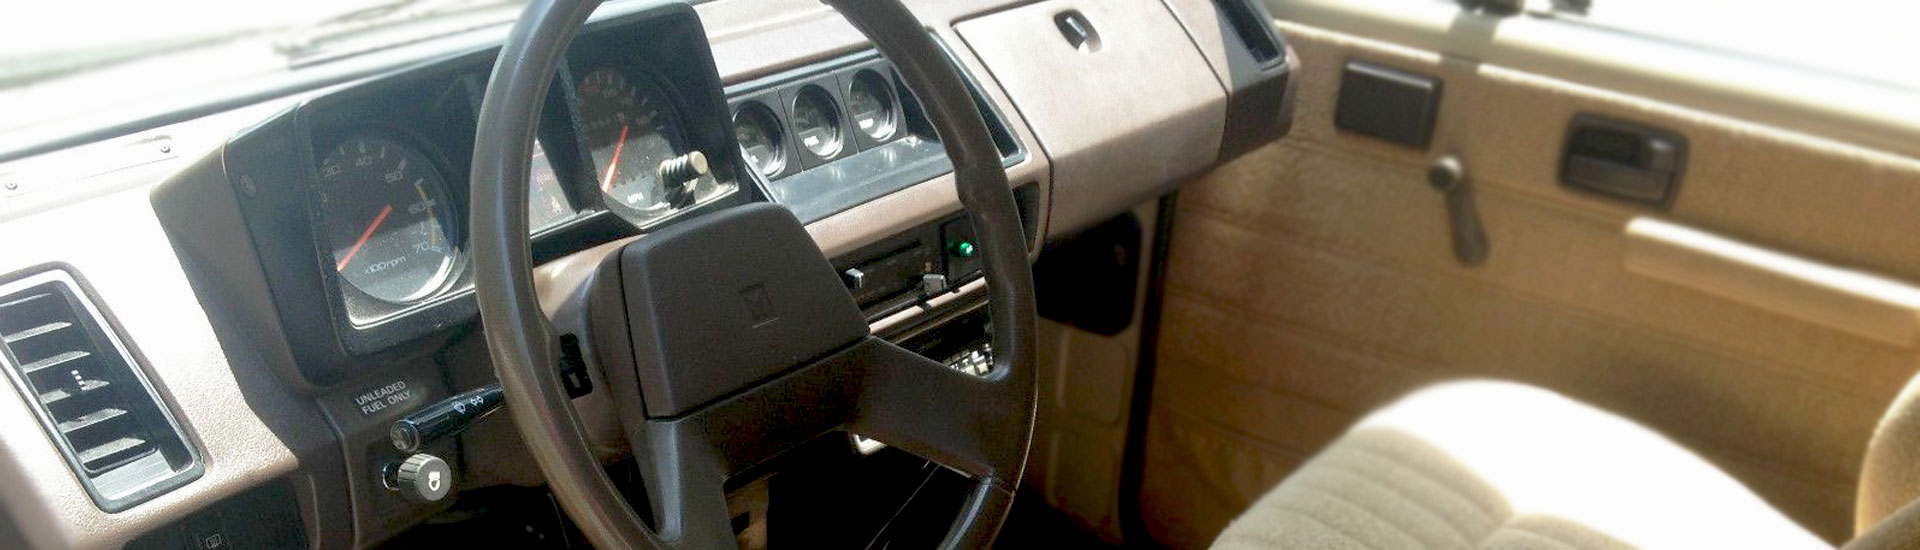 Isuzu Trooper II Custom Dash Kits